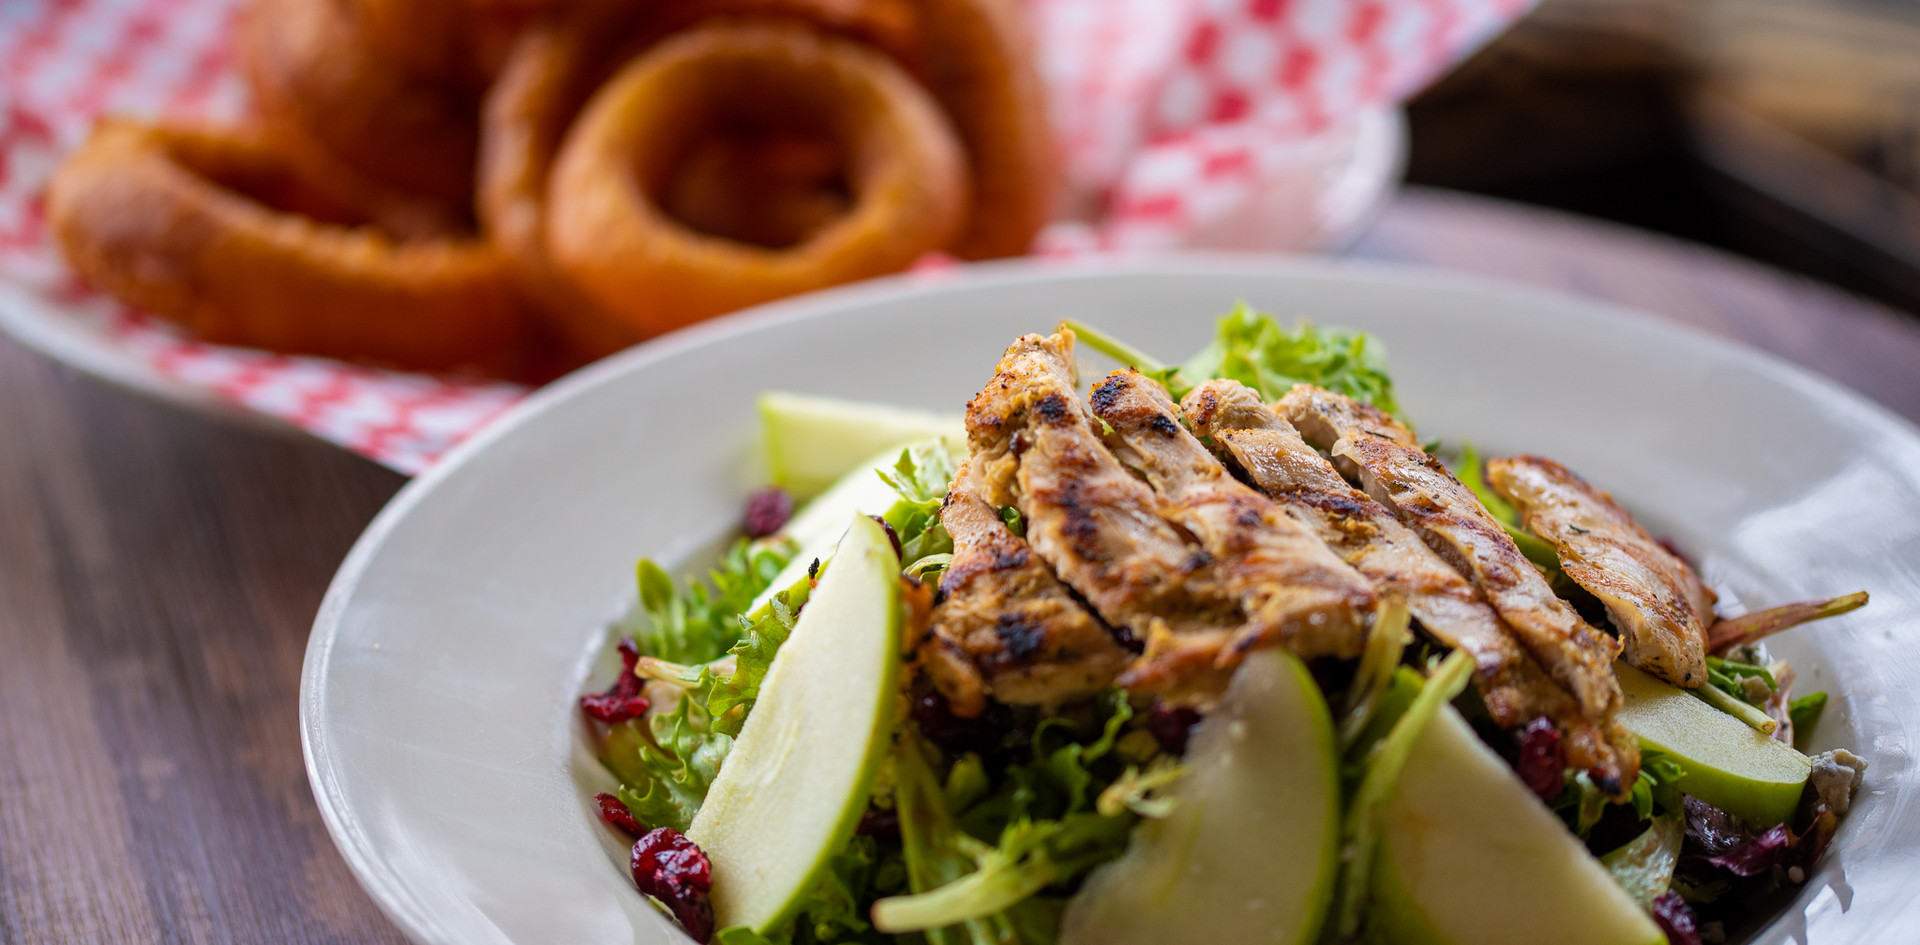 Harvest Grilled Chicken Salad & Onion Rings